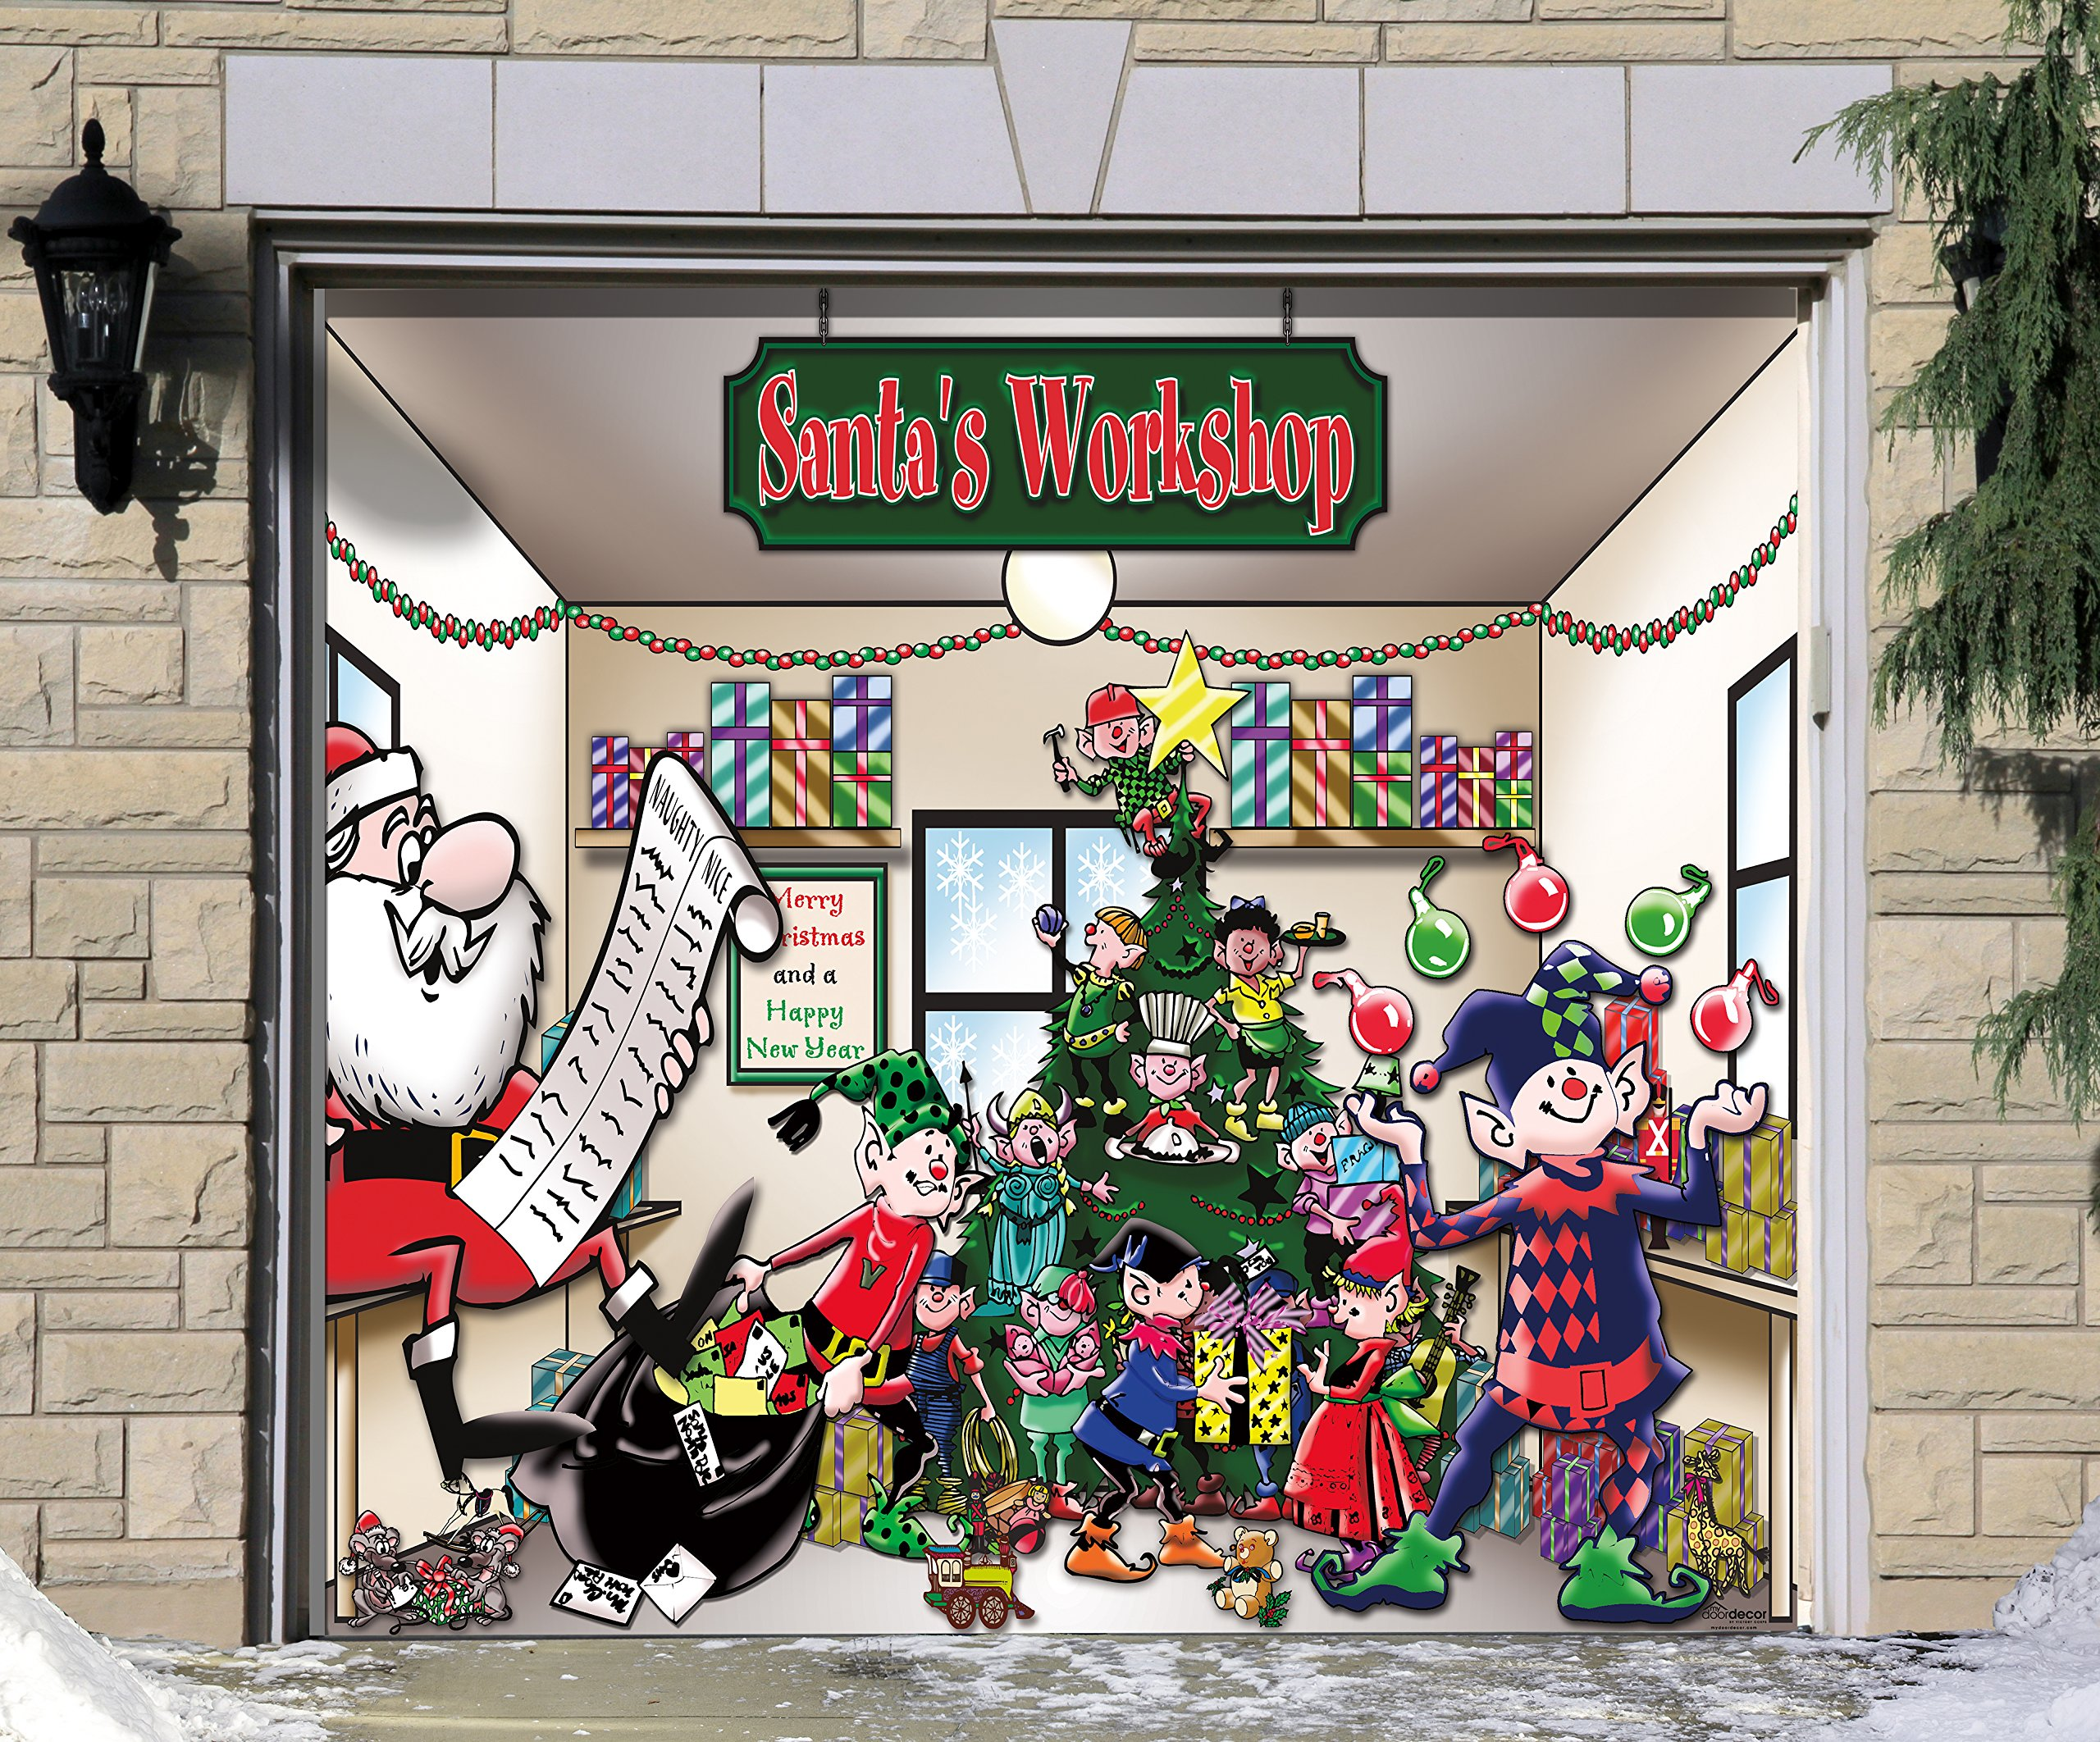 Outdoor Christmas Holiday Garage Door Banner Cover Mural Décoration - Santa's Workshop Holiday Garage Door Banner Décor Sign 7'x8' by Victory Corps